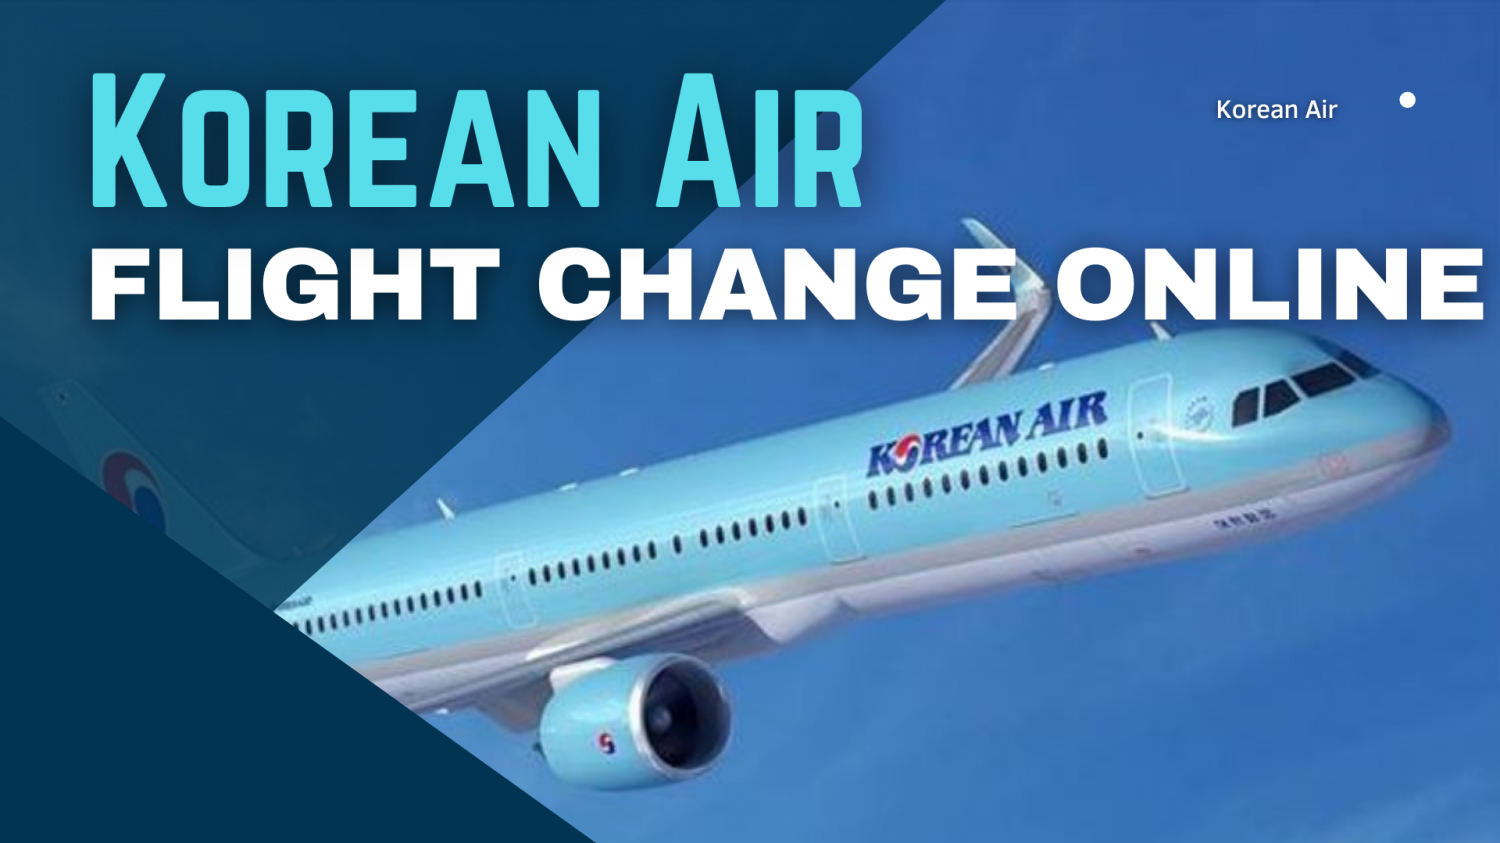 Know about Korean Air Flight change online process Infographic